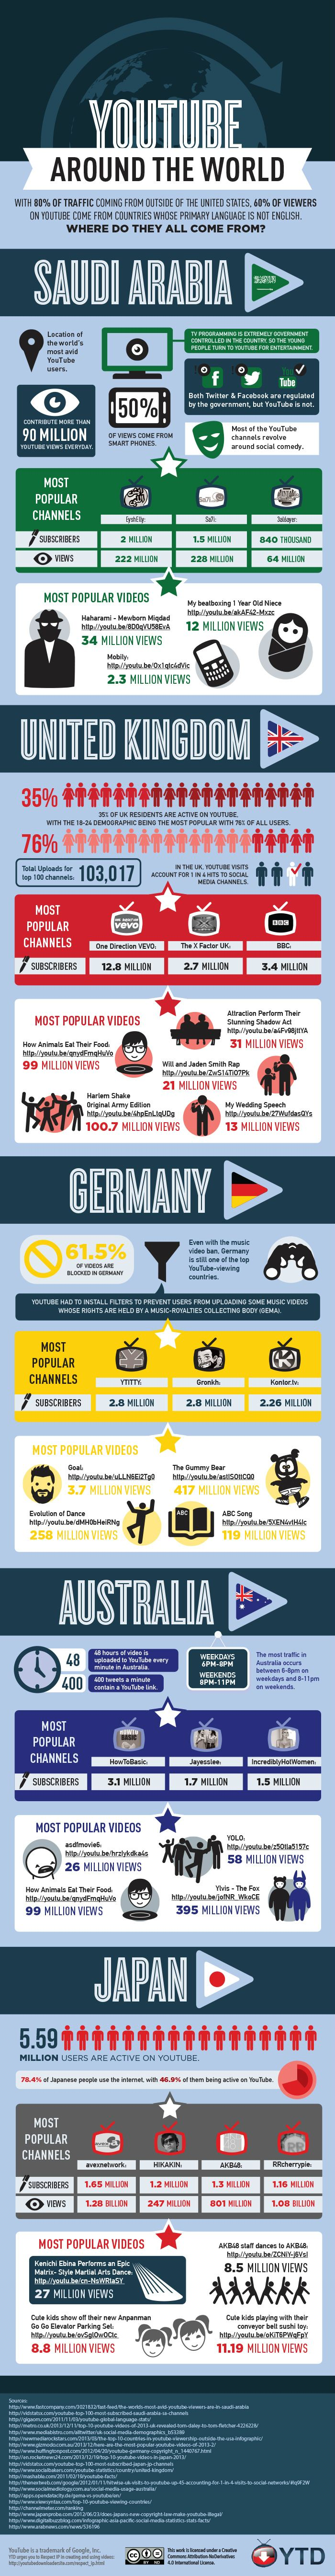 wersm_around_world_youtube_infographic